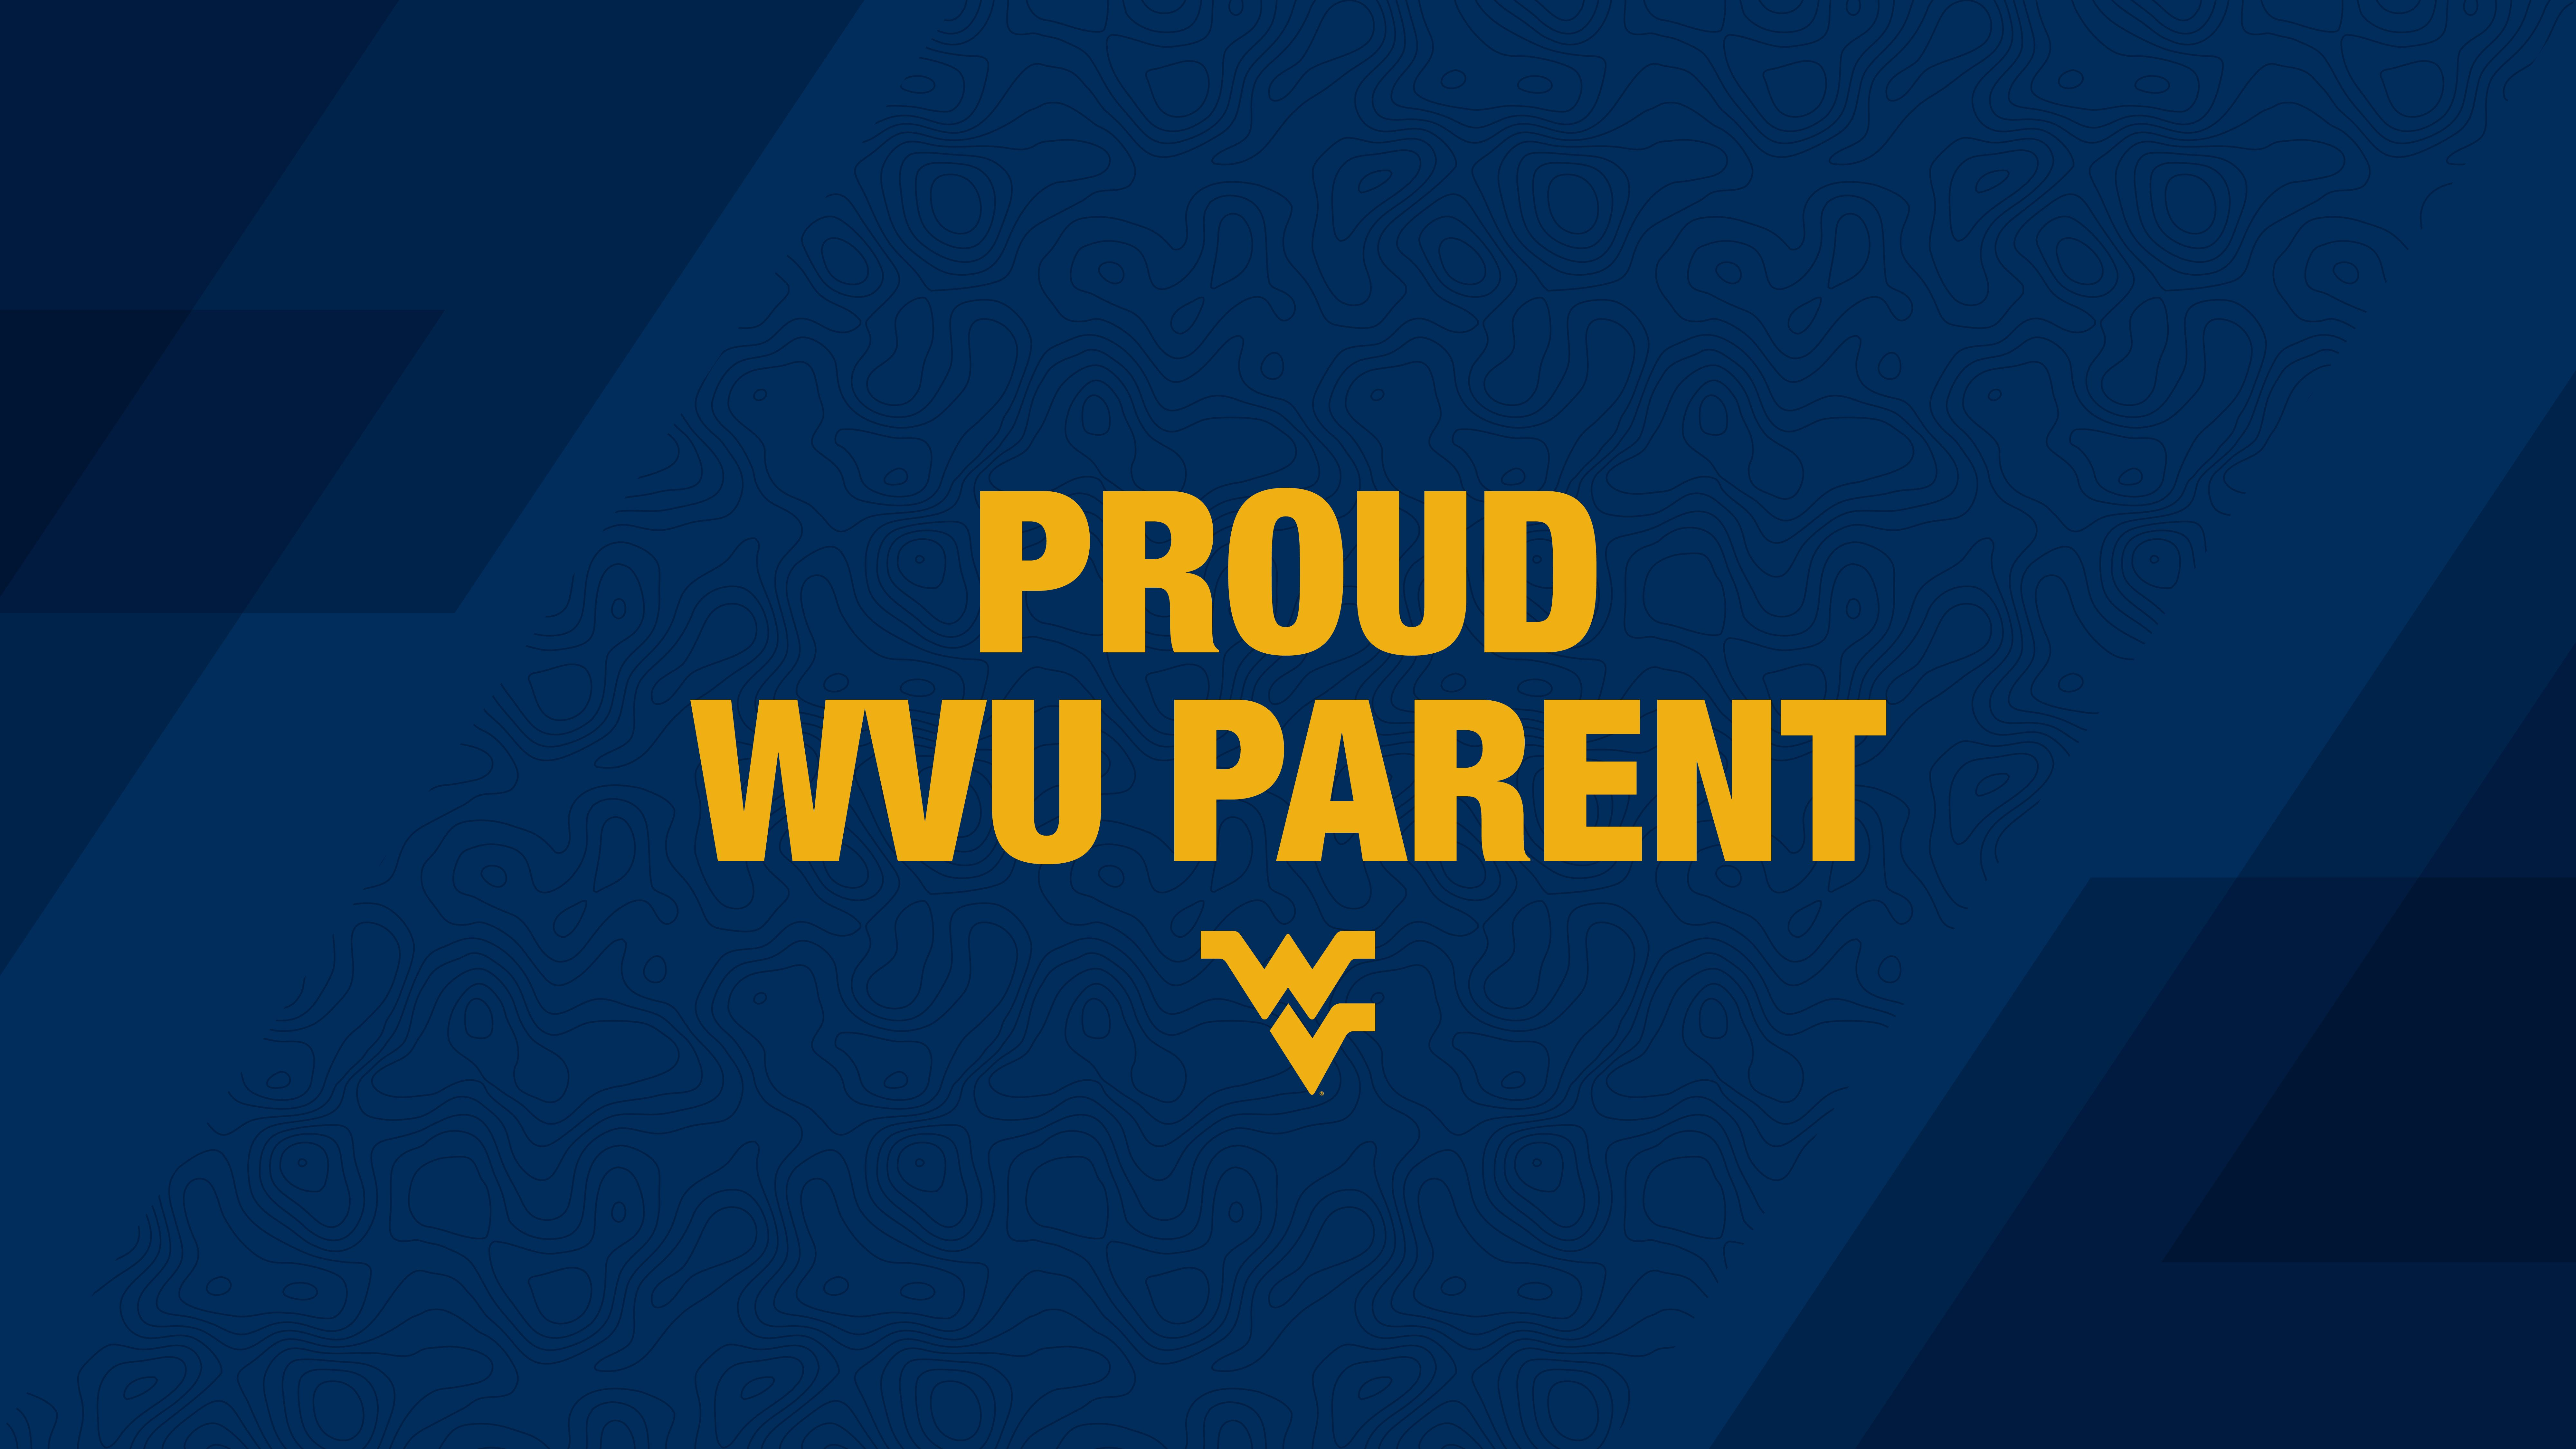 Proud parent PC or tablet wallpaper